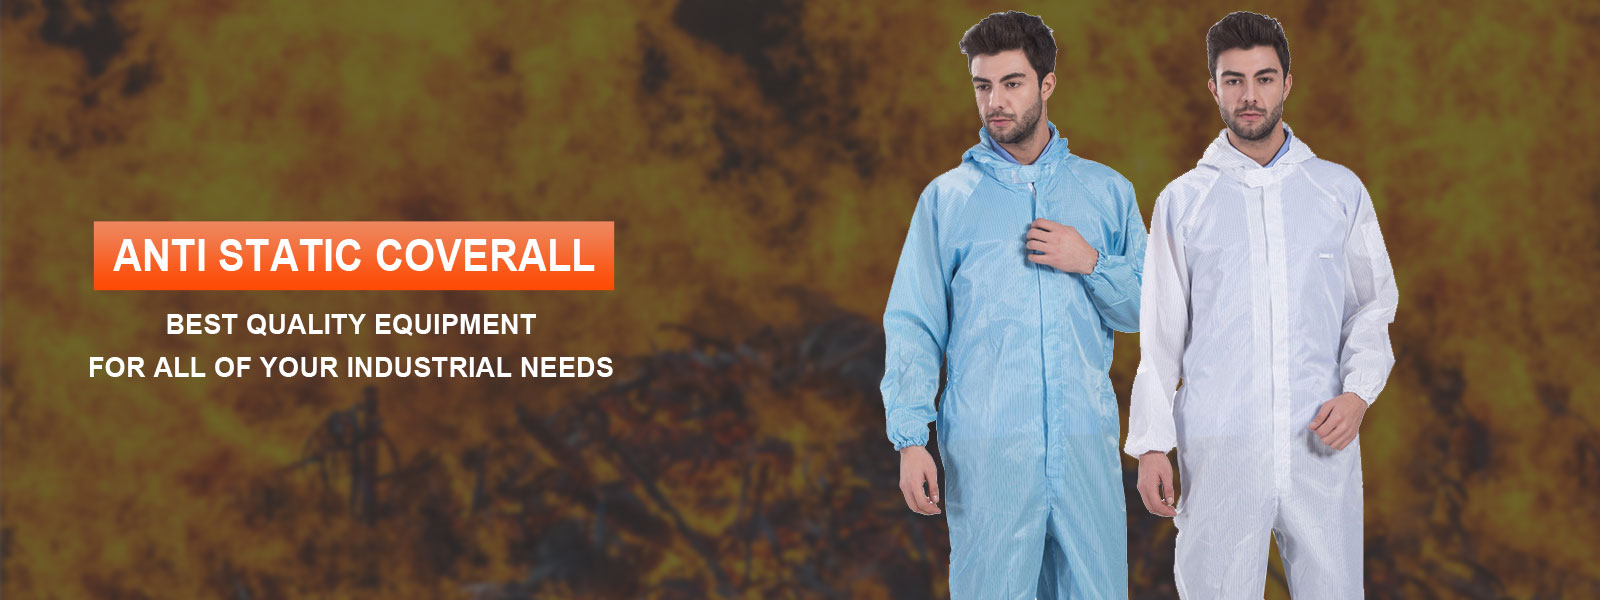 Anti Static Coverall Manufacturers in Lithuania